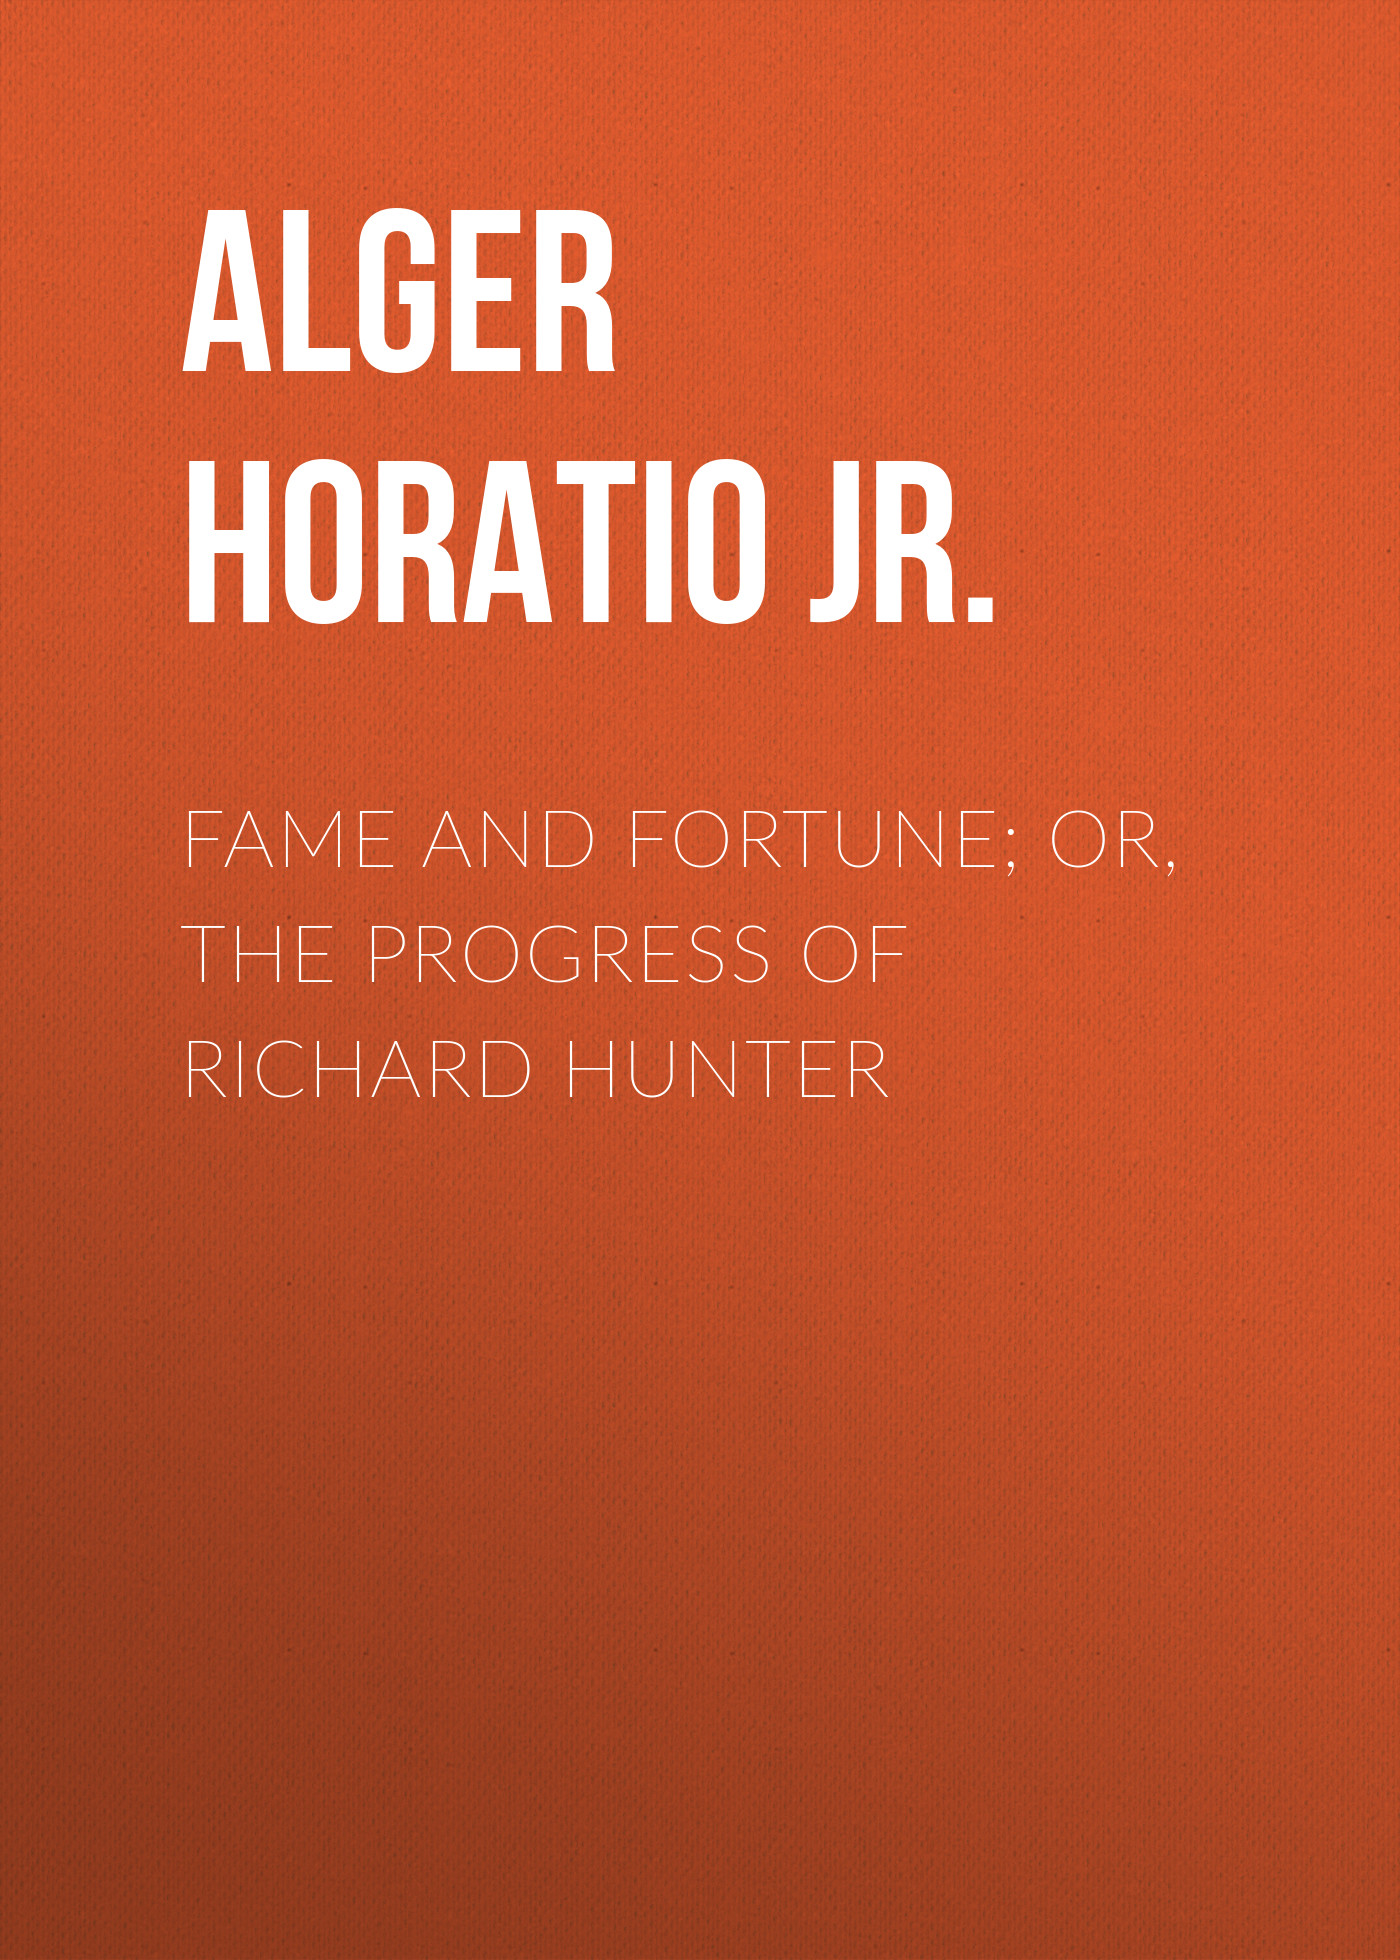 Alger Horatio Jr. Fame and Fortune; or, The Progress of Richard Hunter цена 2017